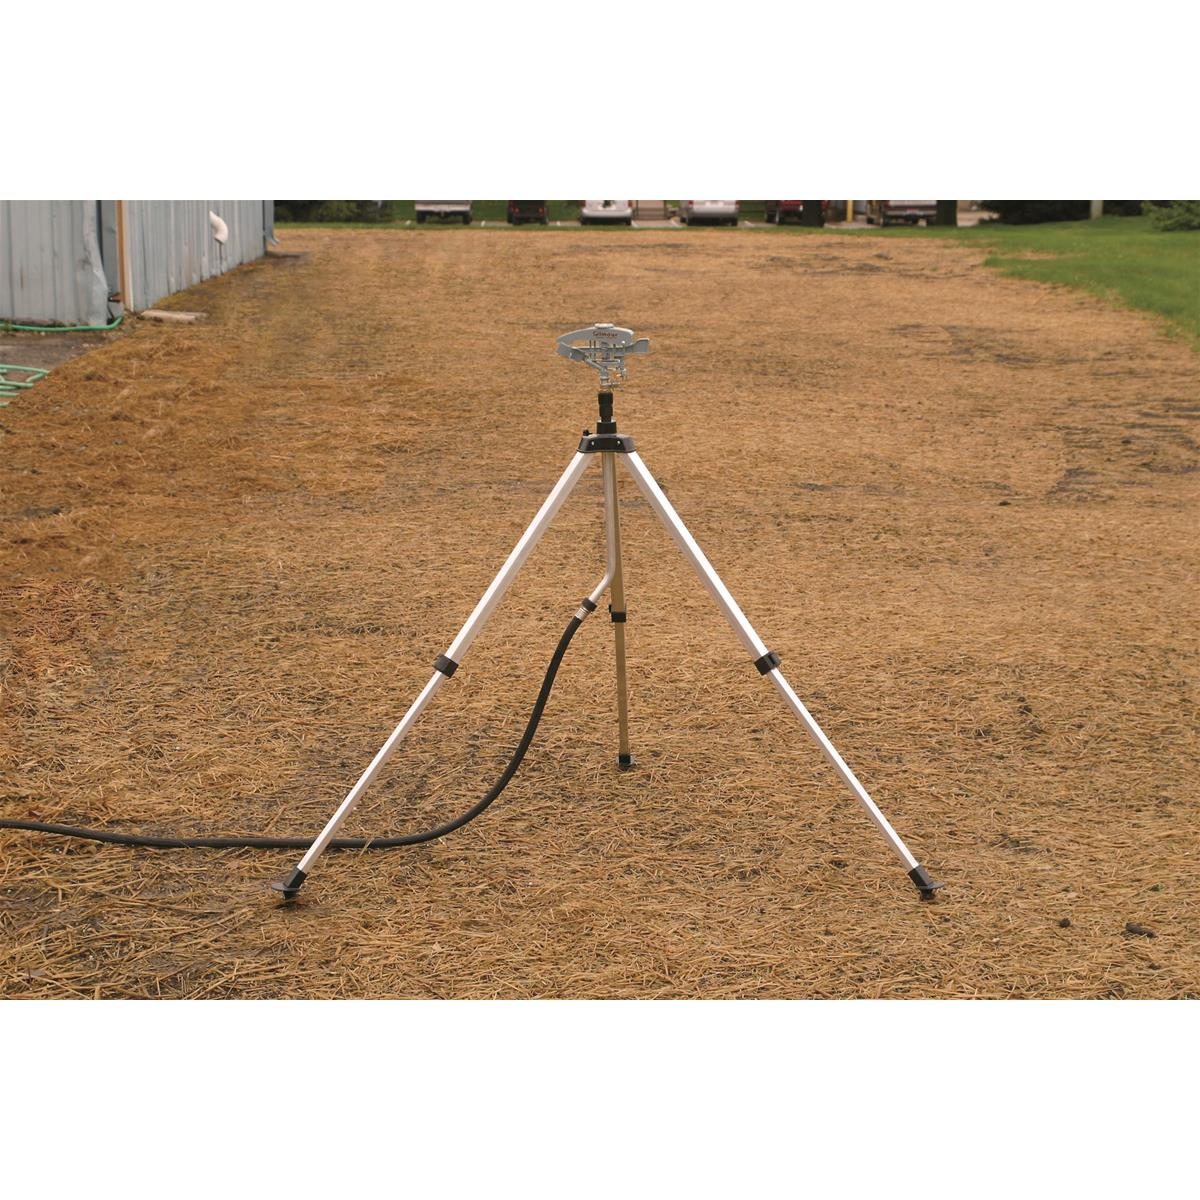 Telescoping High-Rise Tripod Sprinkler